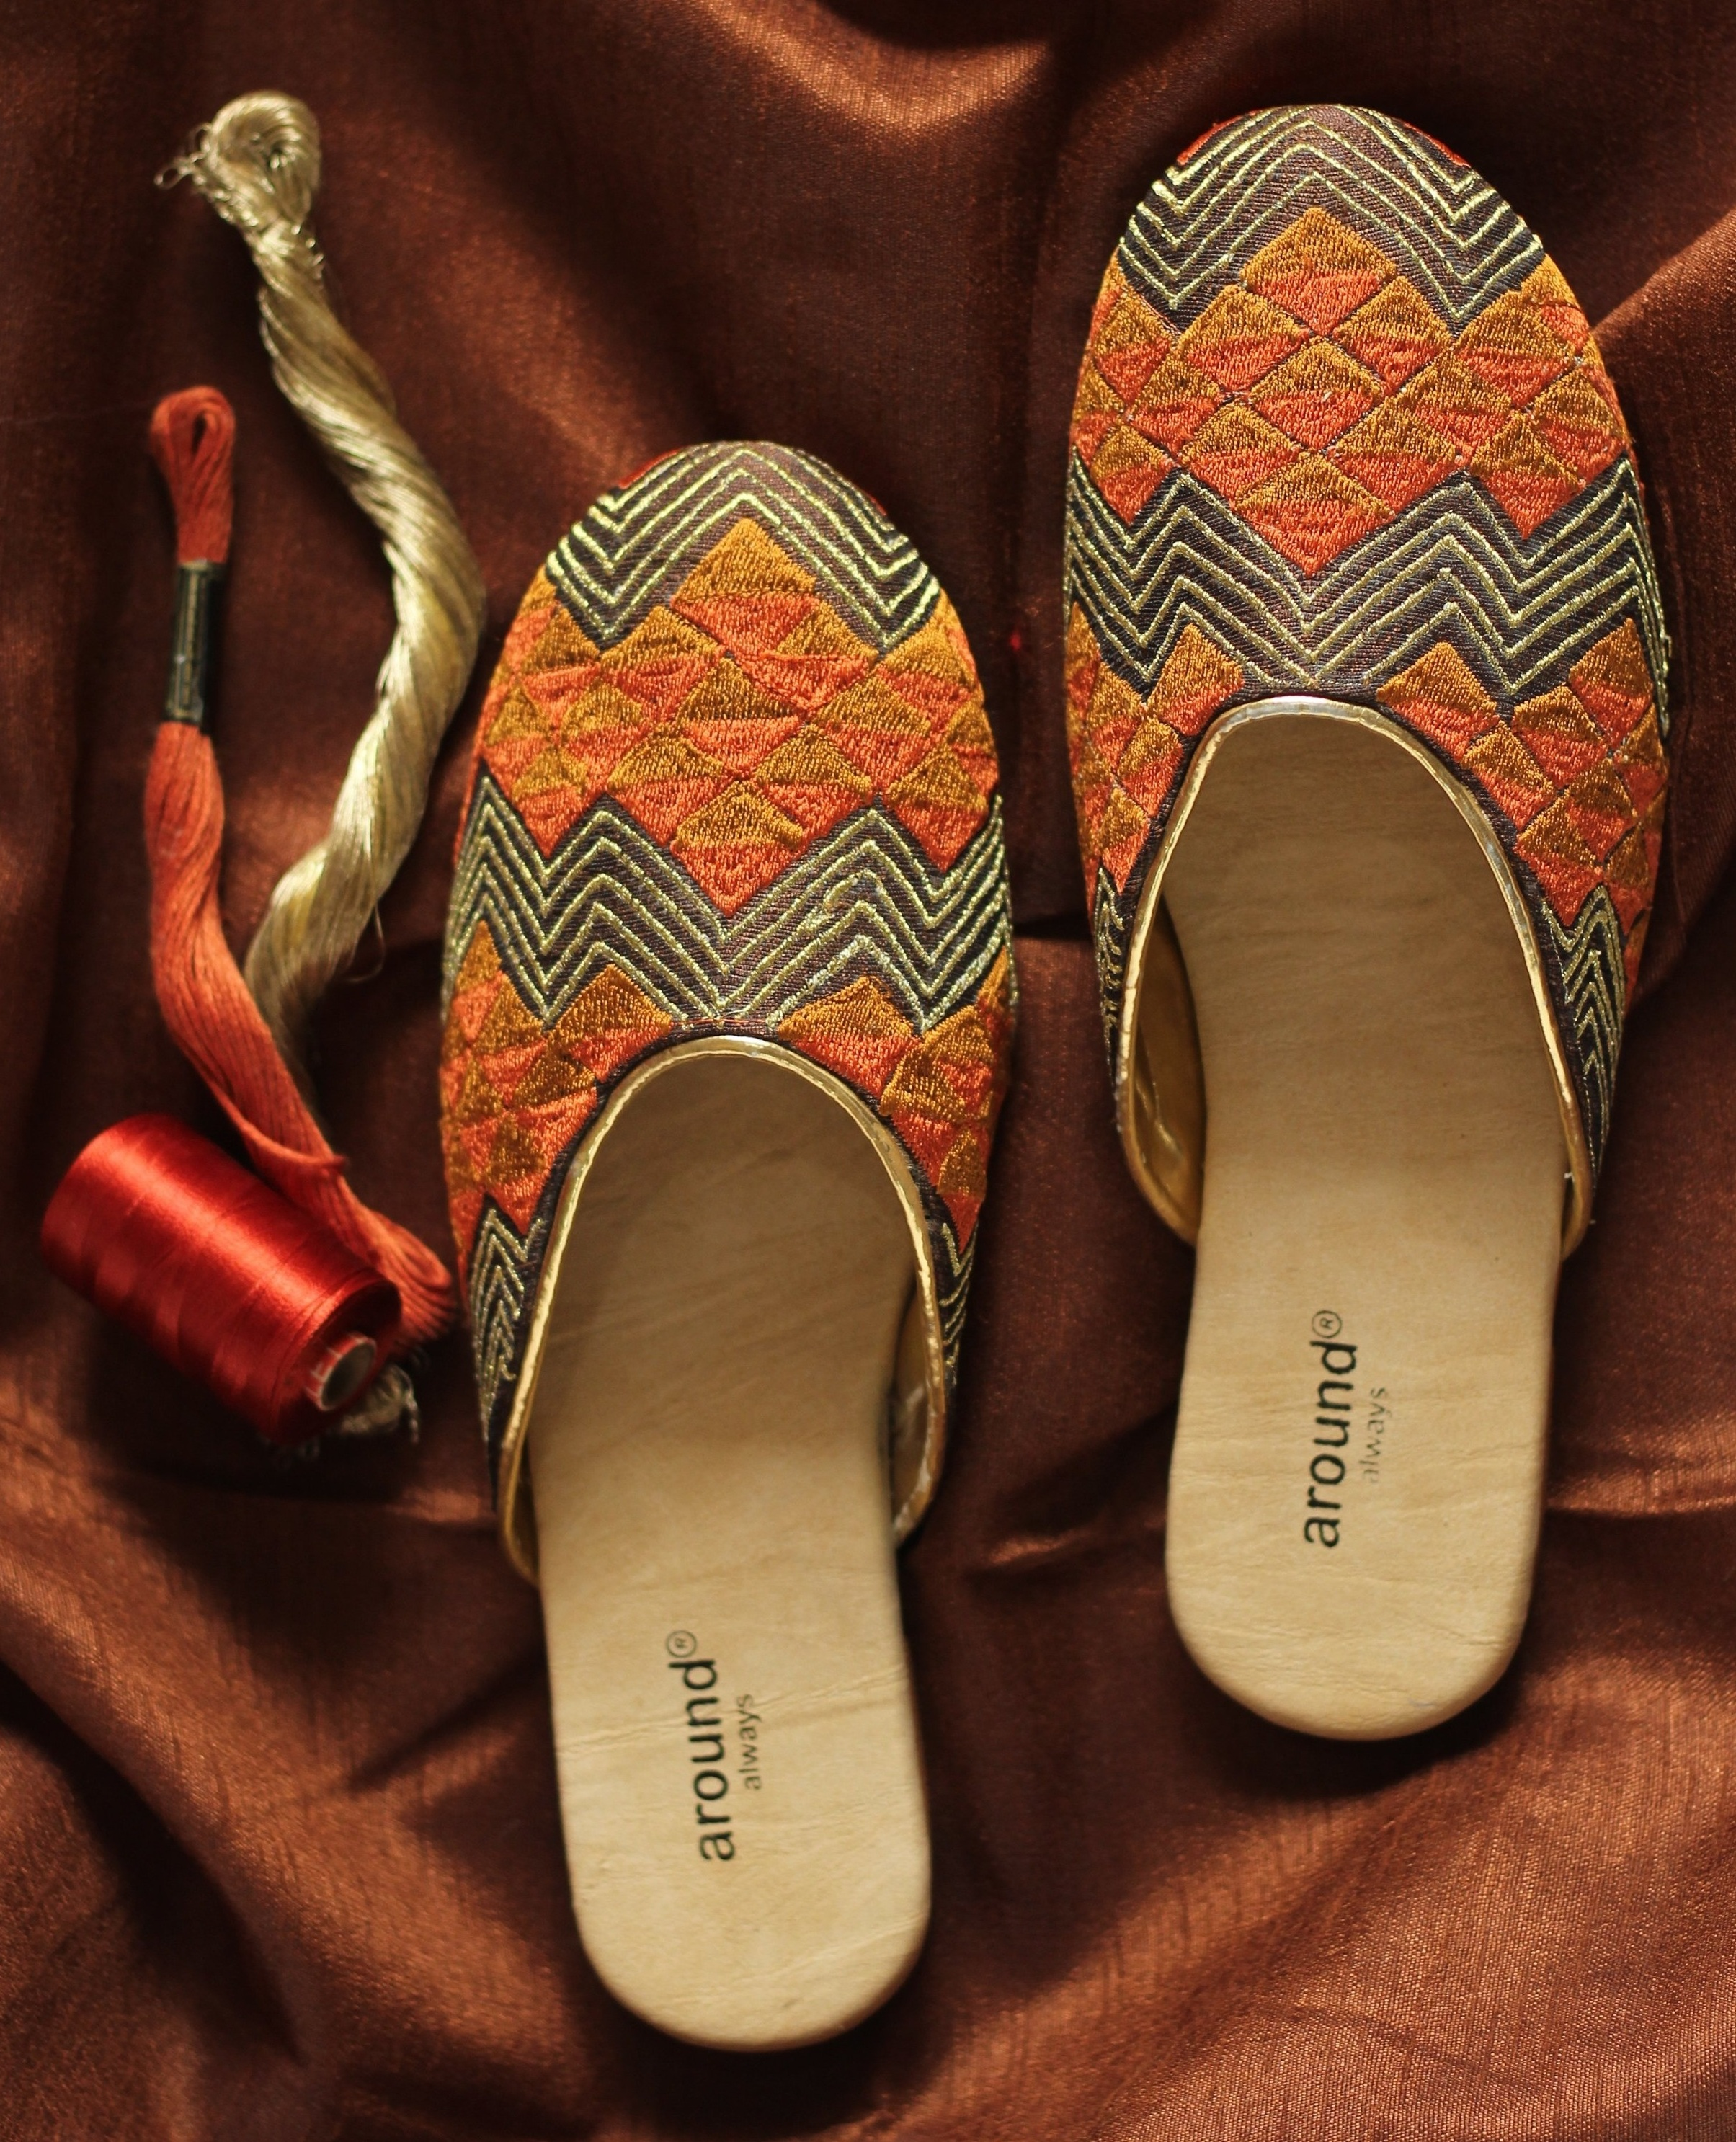 ZIG ZAG - Zig Zag pattern in shades of brown, for those who believe in easy and elegant styling.